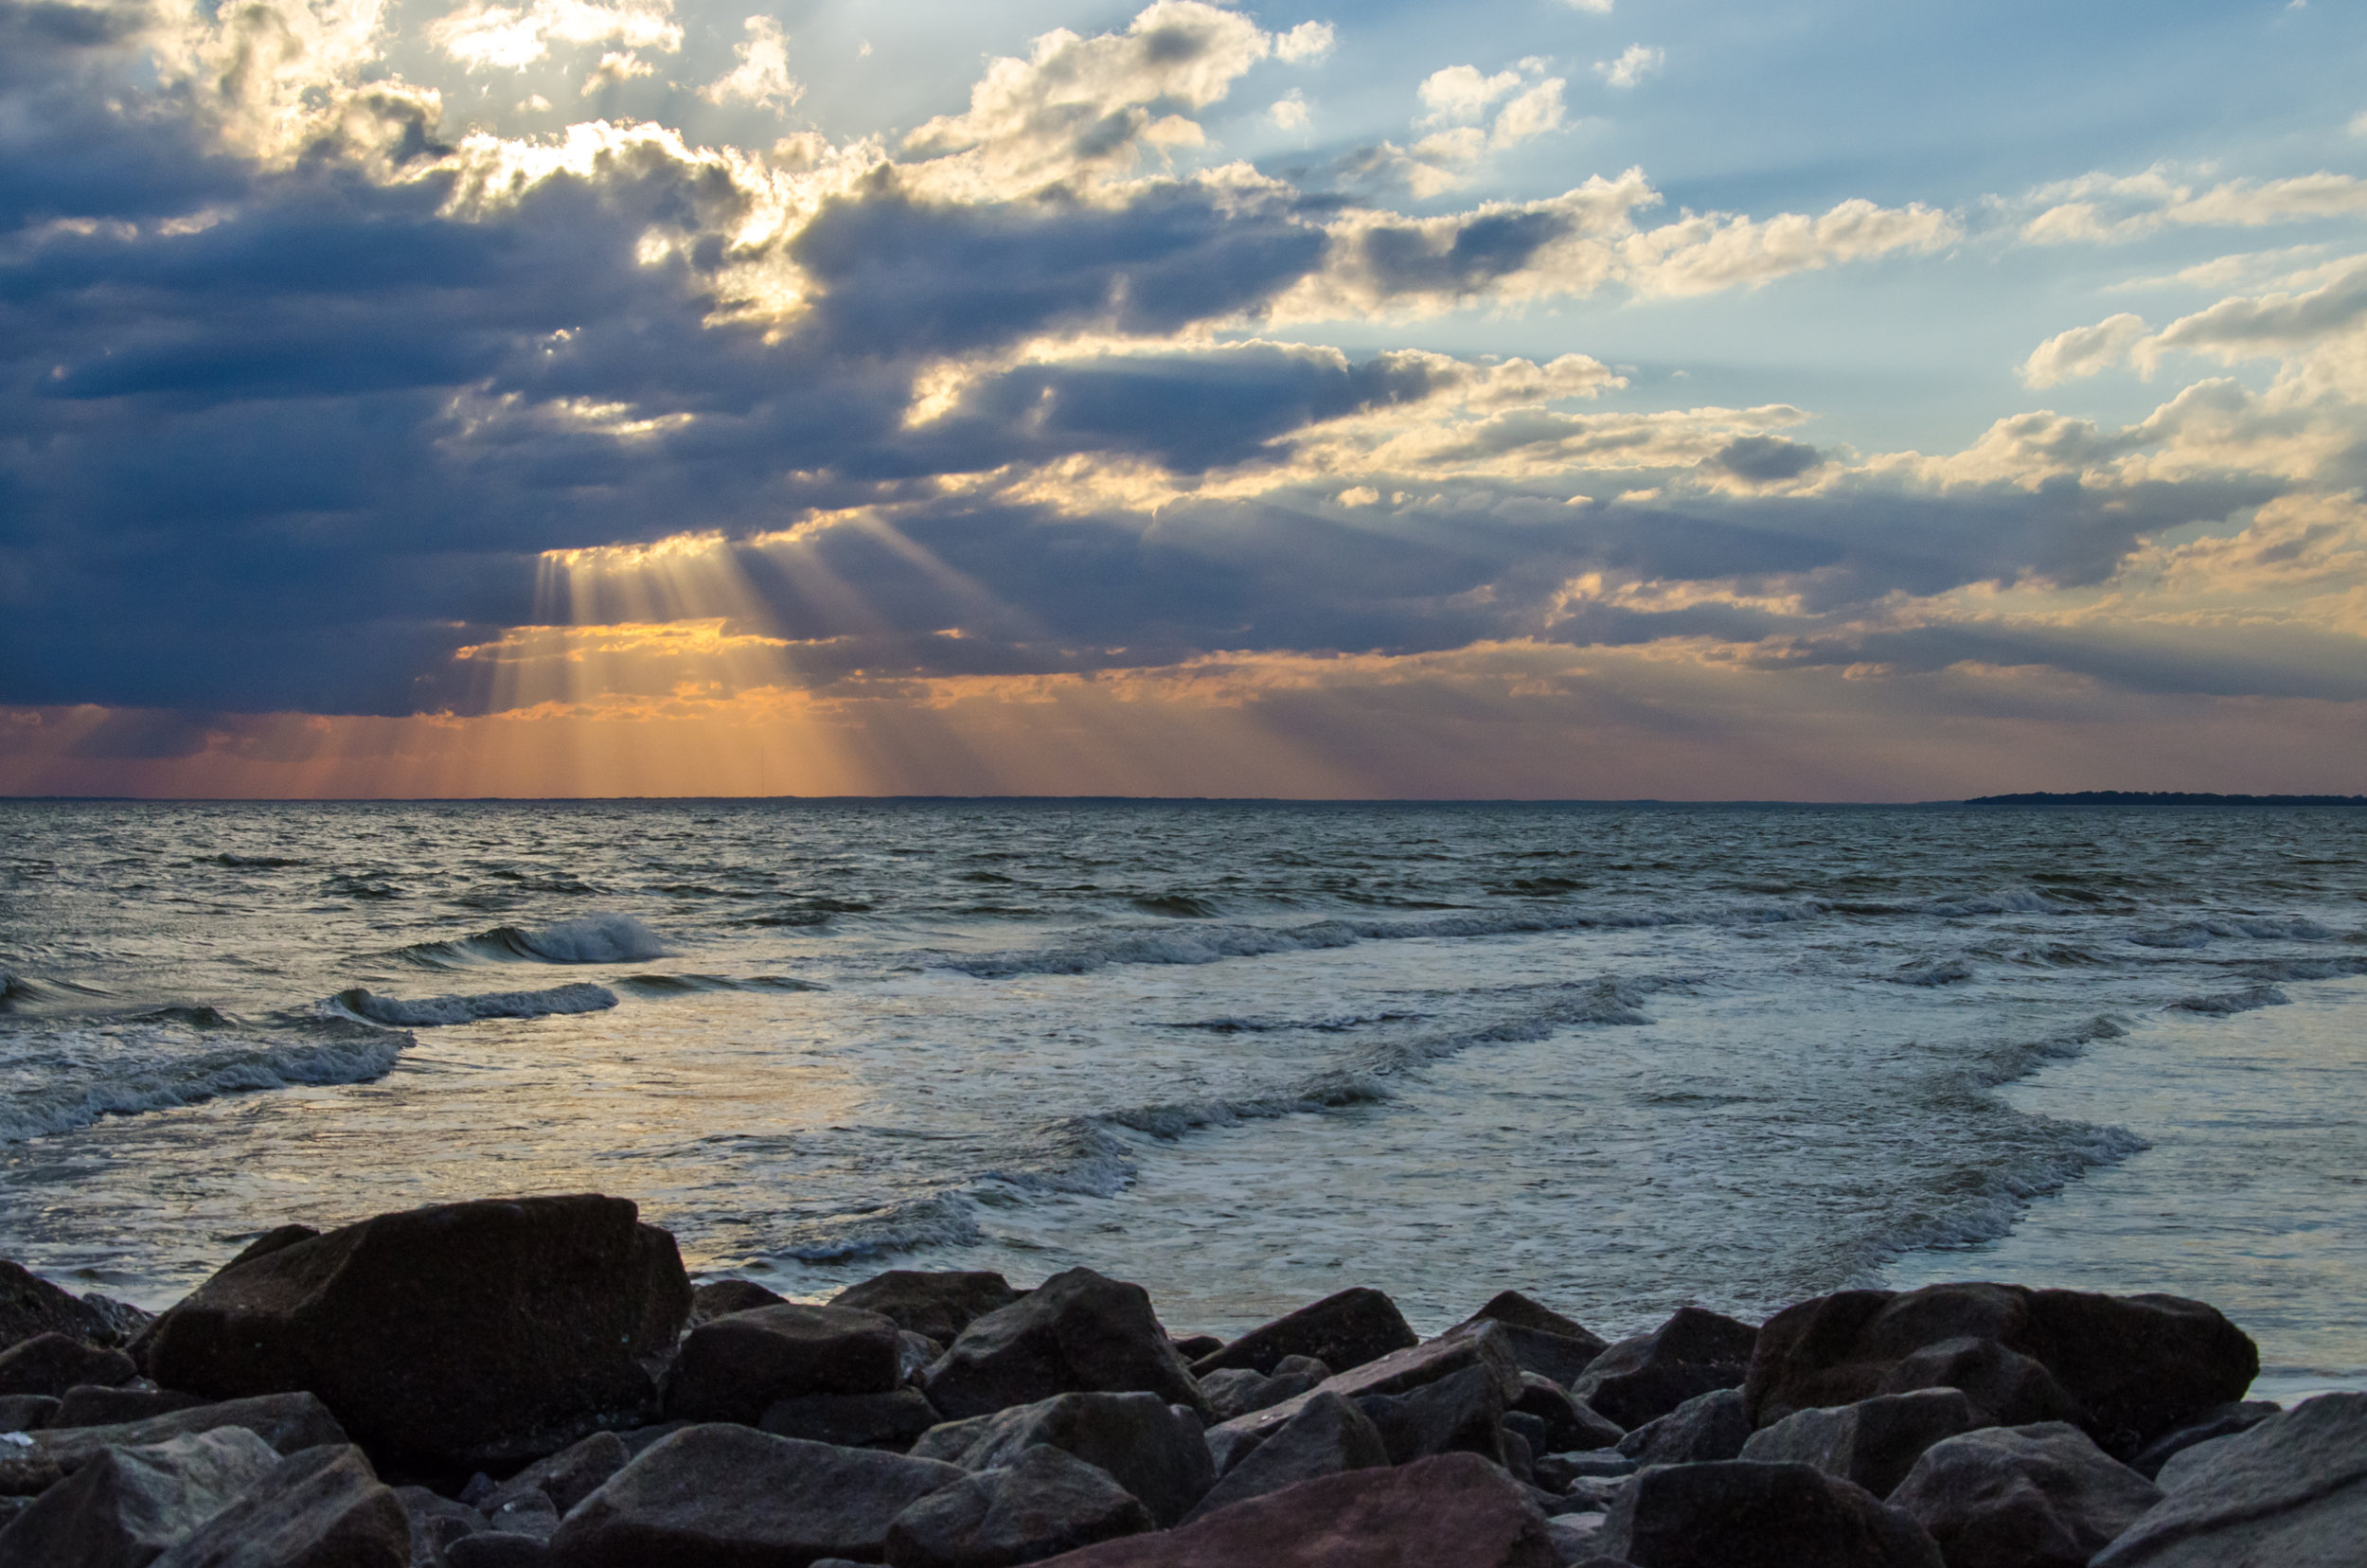 Sun rays beam down through clouds over the ocean.